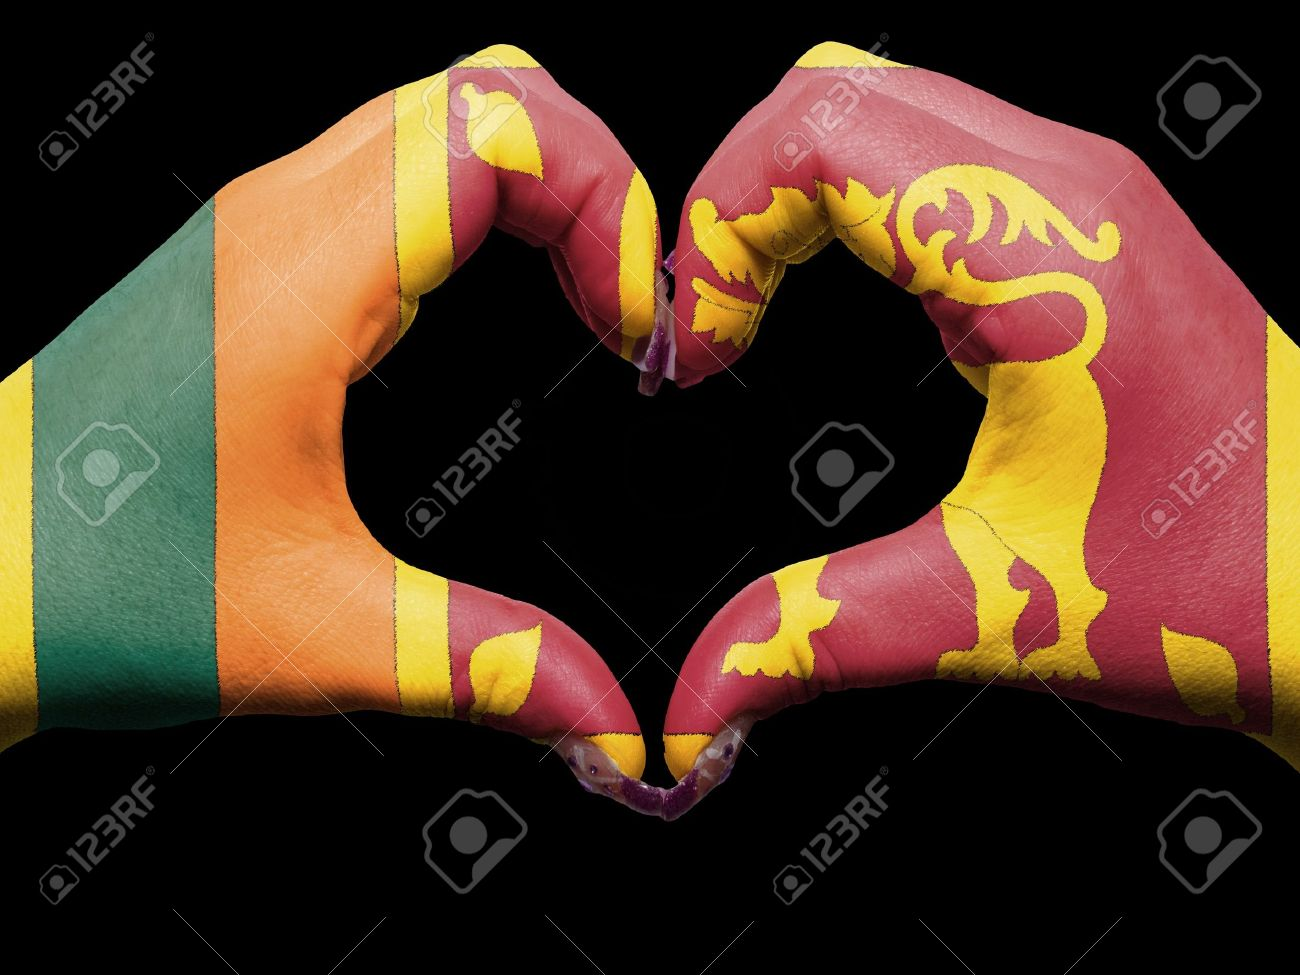 Tourist peru made by sri lanka flag colored hands showing symbol of heart and love Stock Photo - 13038829